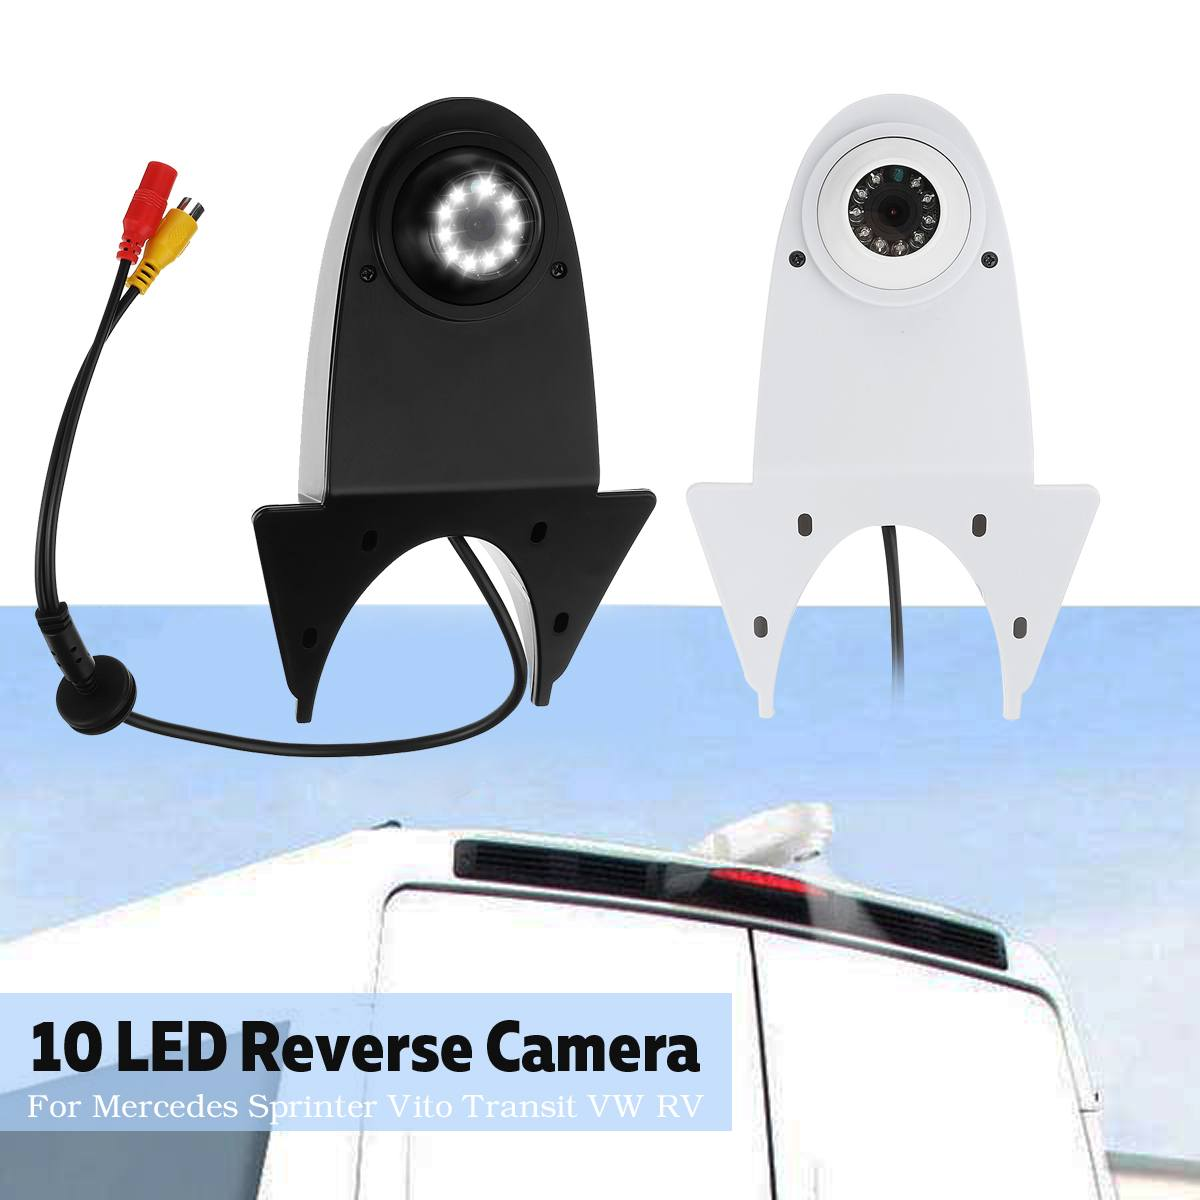 Car Rear View Reverse Camera For Mercedes for Benz Viano Sprinter Vito for VW Transporter Crafter Infrared Vehicle Backup Camera-in Vehicle Camera from Automobiles & Motorcycles on AliExpress - 11.11_Double 11_Singles' Day 1